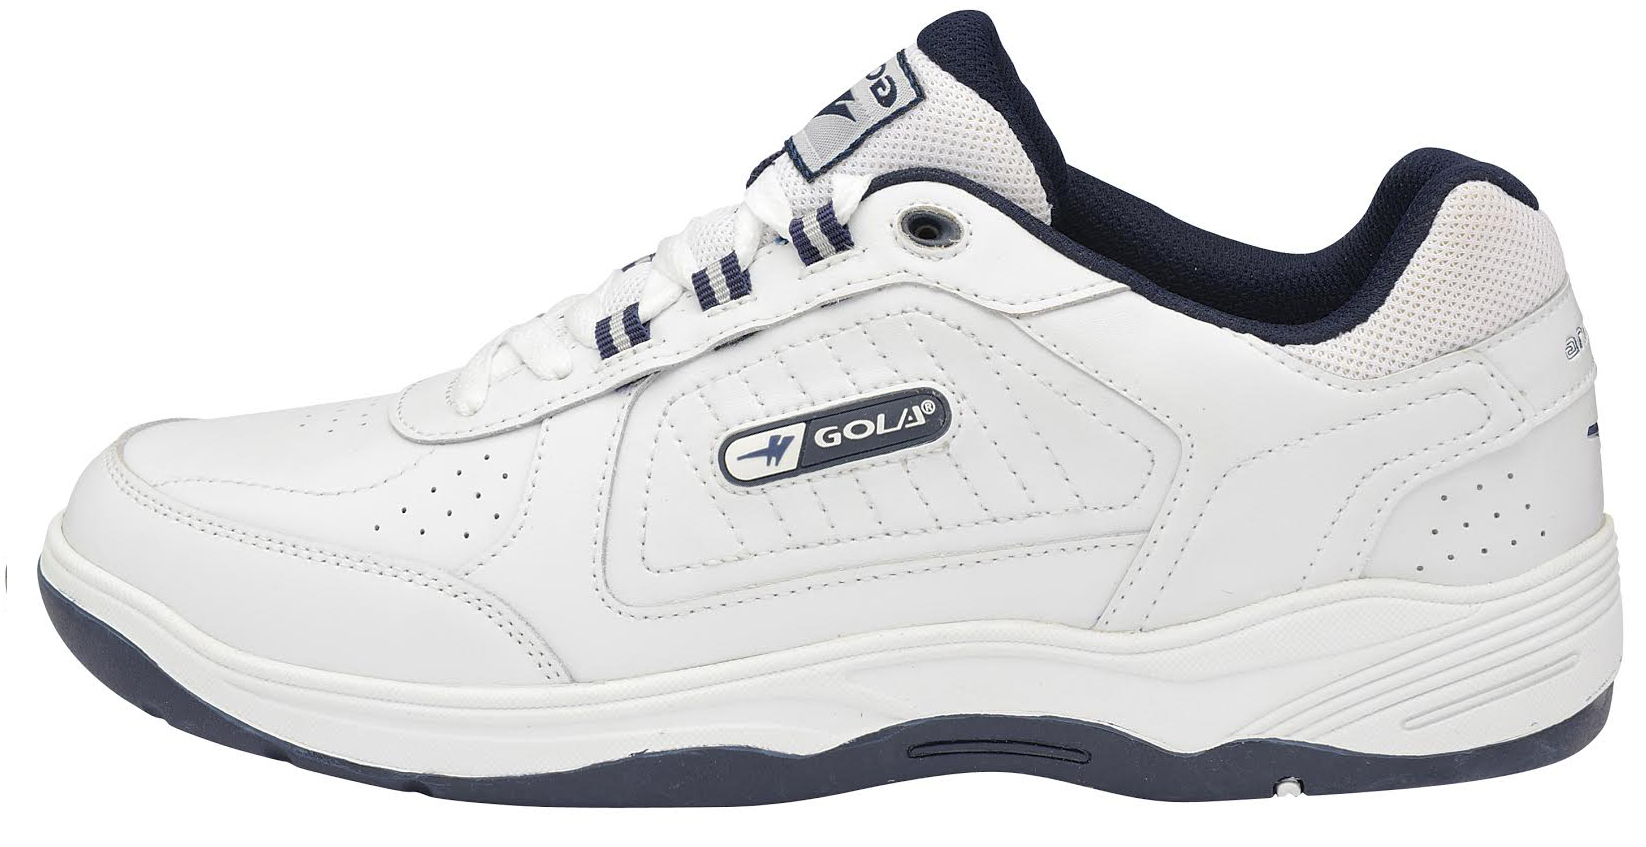 Uomo Trainers Gola Belmont New Lace Up Wide Sneaker EE Fit Leder Sports Sneaker Wide Schuhes 3f2006